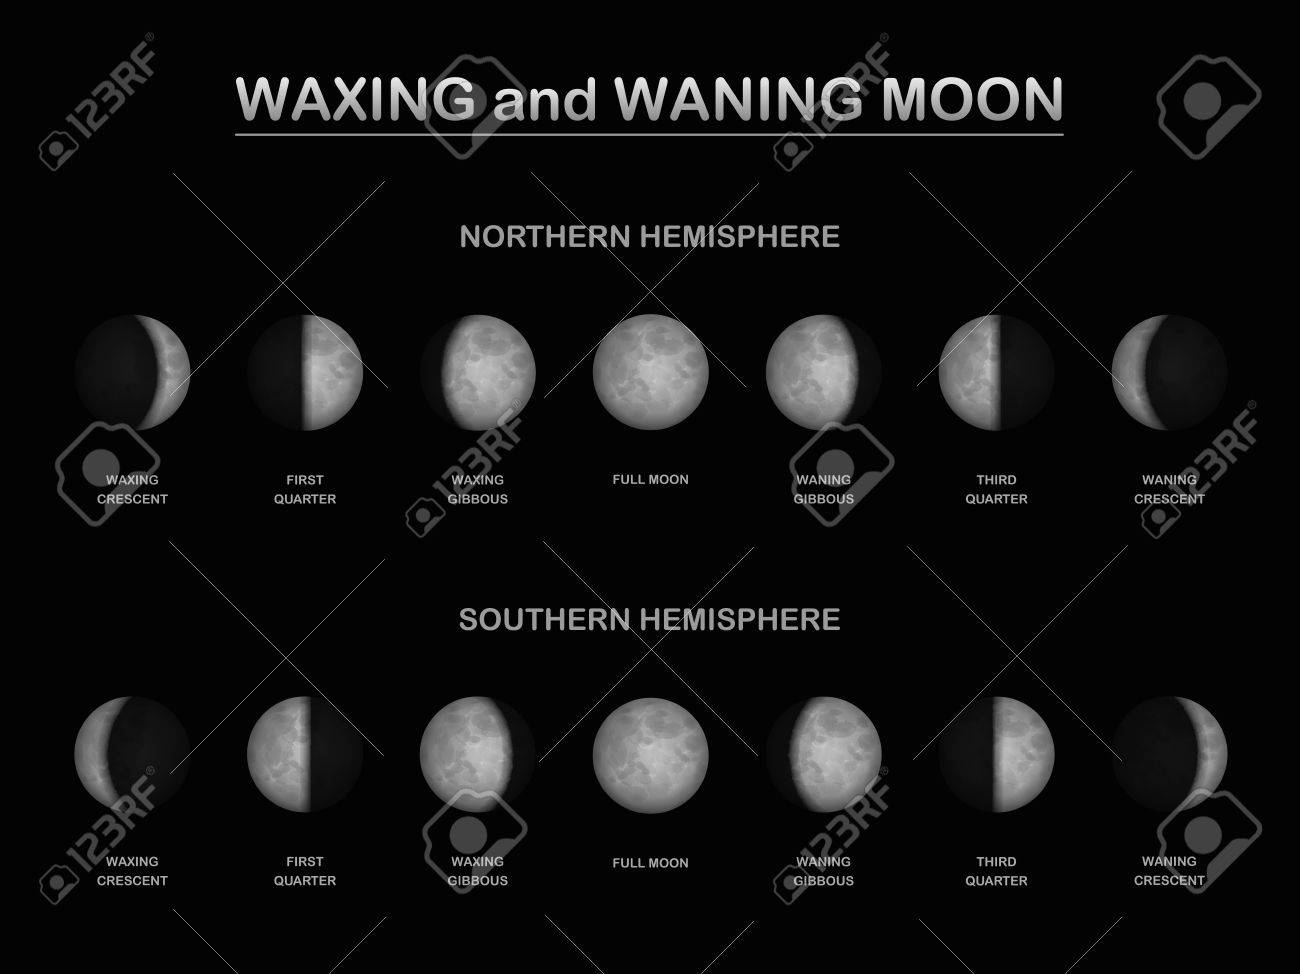 Moon Phases Diagram Southern Hemisphere Moonphasesdiagramjpg As Seen From The Northern And